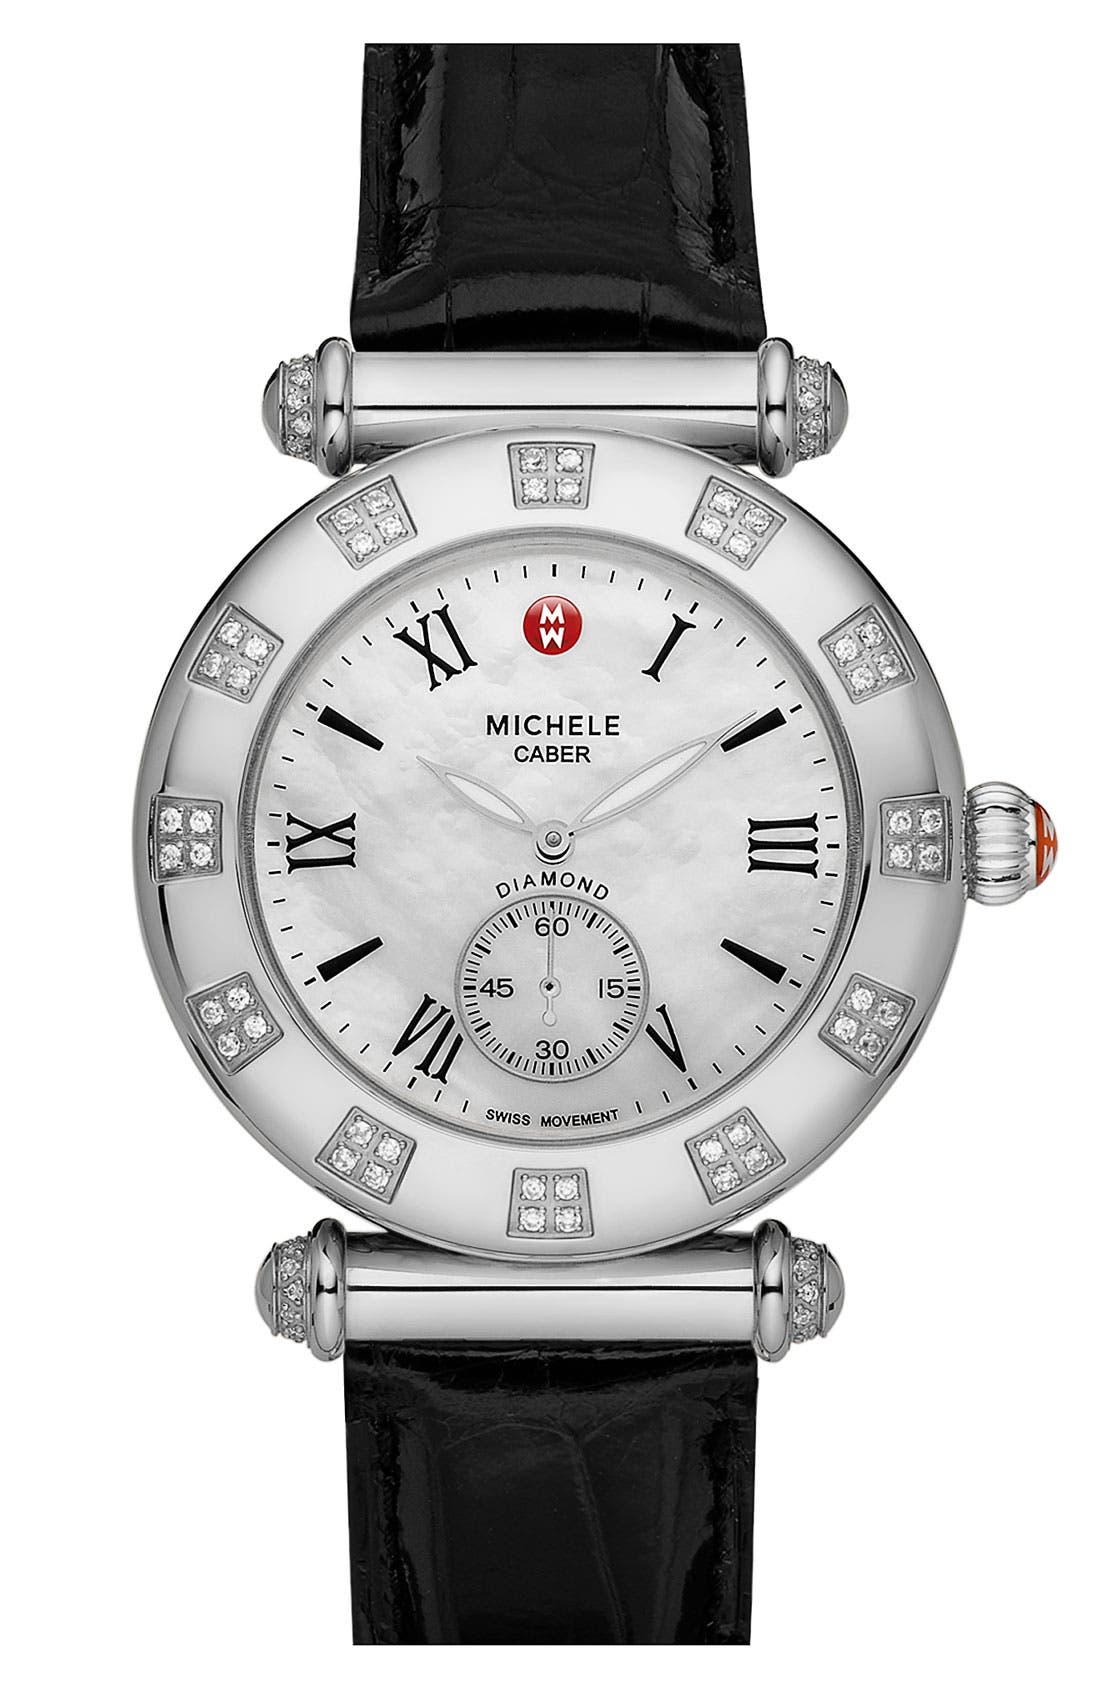 Main Image - MICHELE 'Caber Atlas' Diamond Customizable Watch